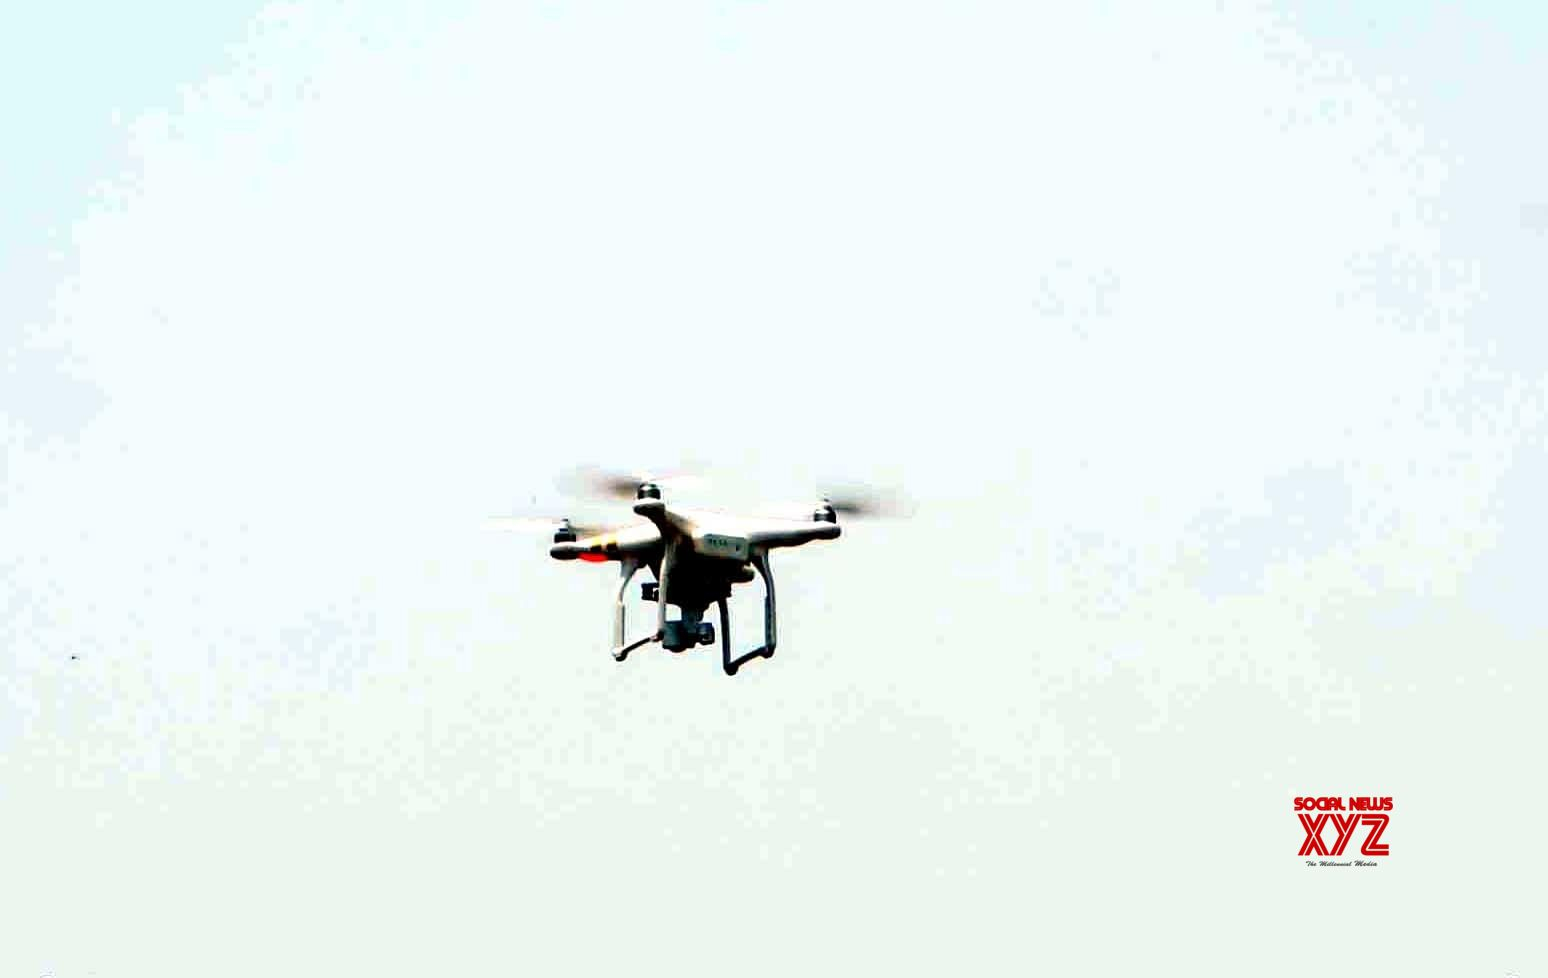 CRPF to use drones in anti-terror operations in J&K